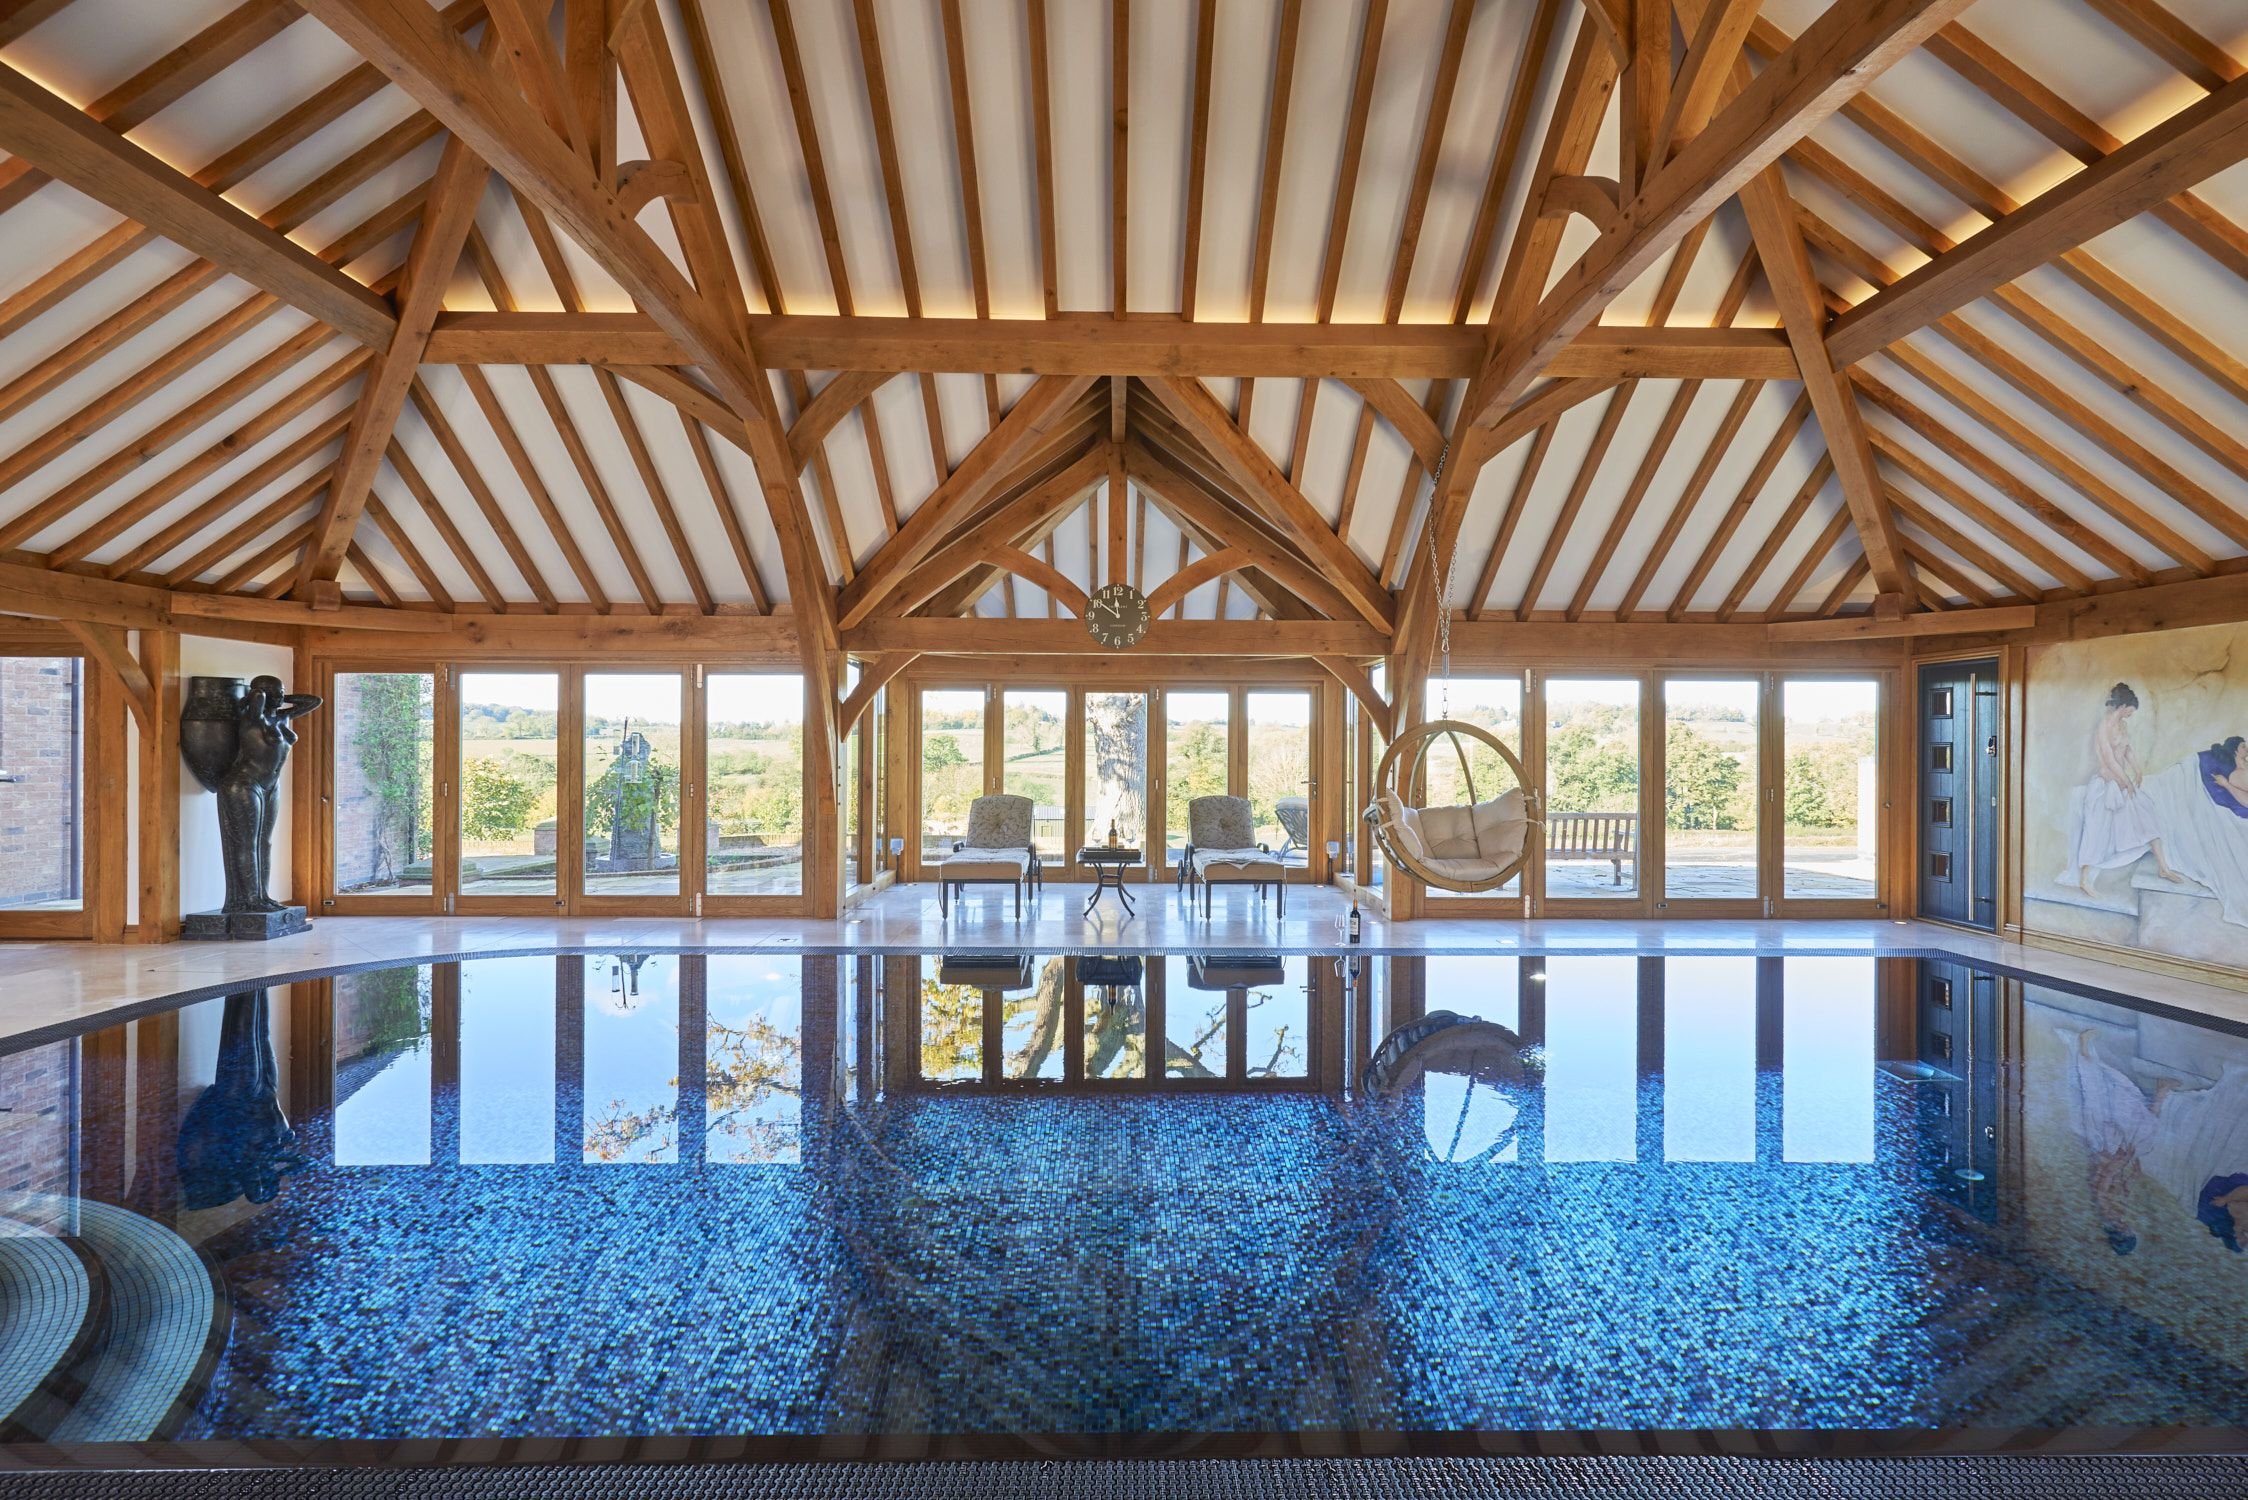 Stunning Oak Framed Pool Room By Our Sister Company Arboreta